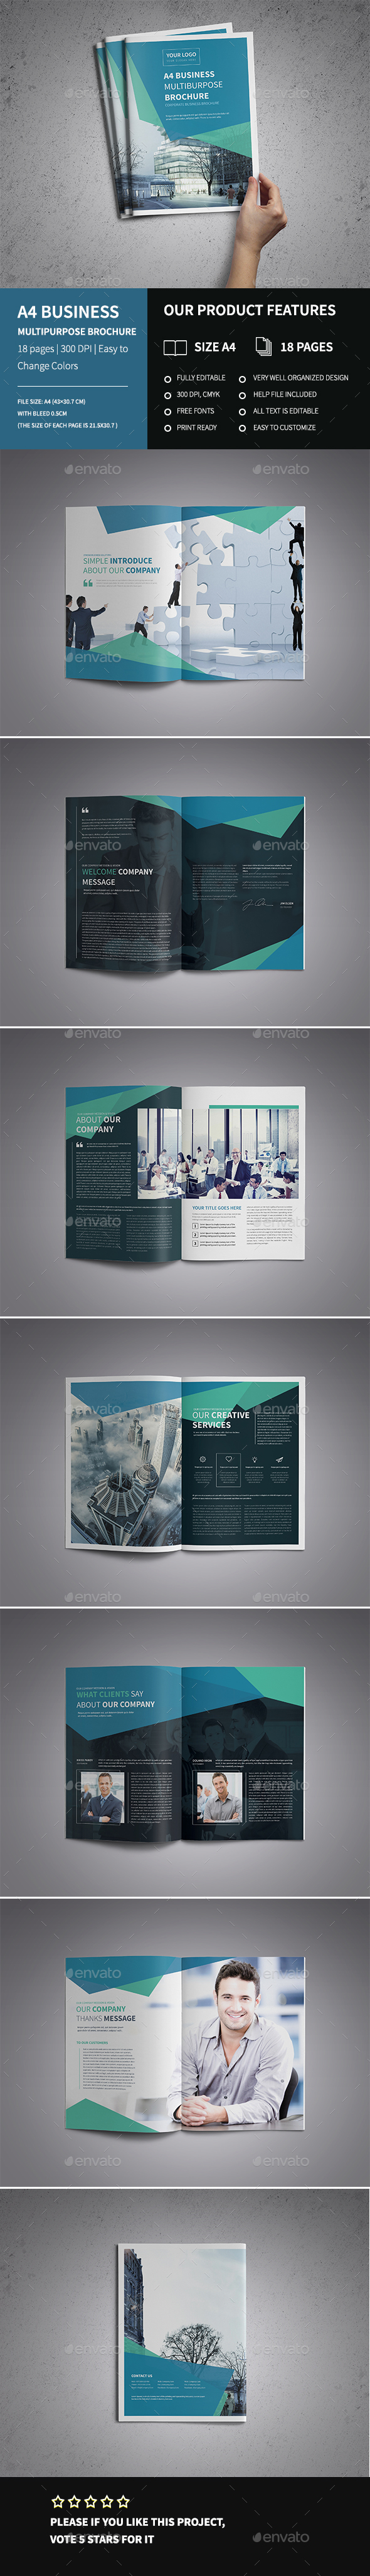 New A4 Corporate Business Brochure - Corporate Brochures